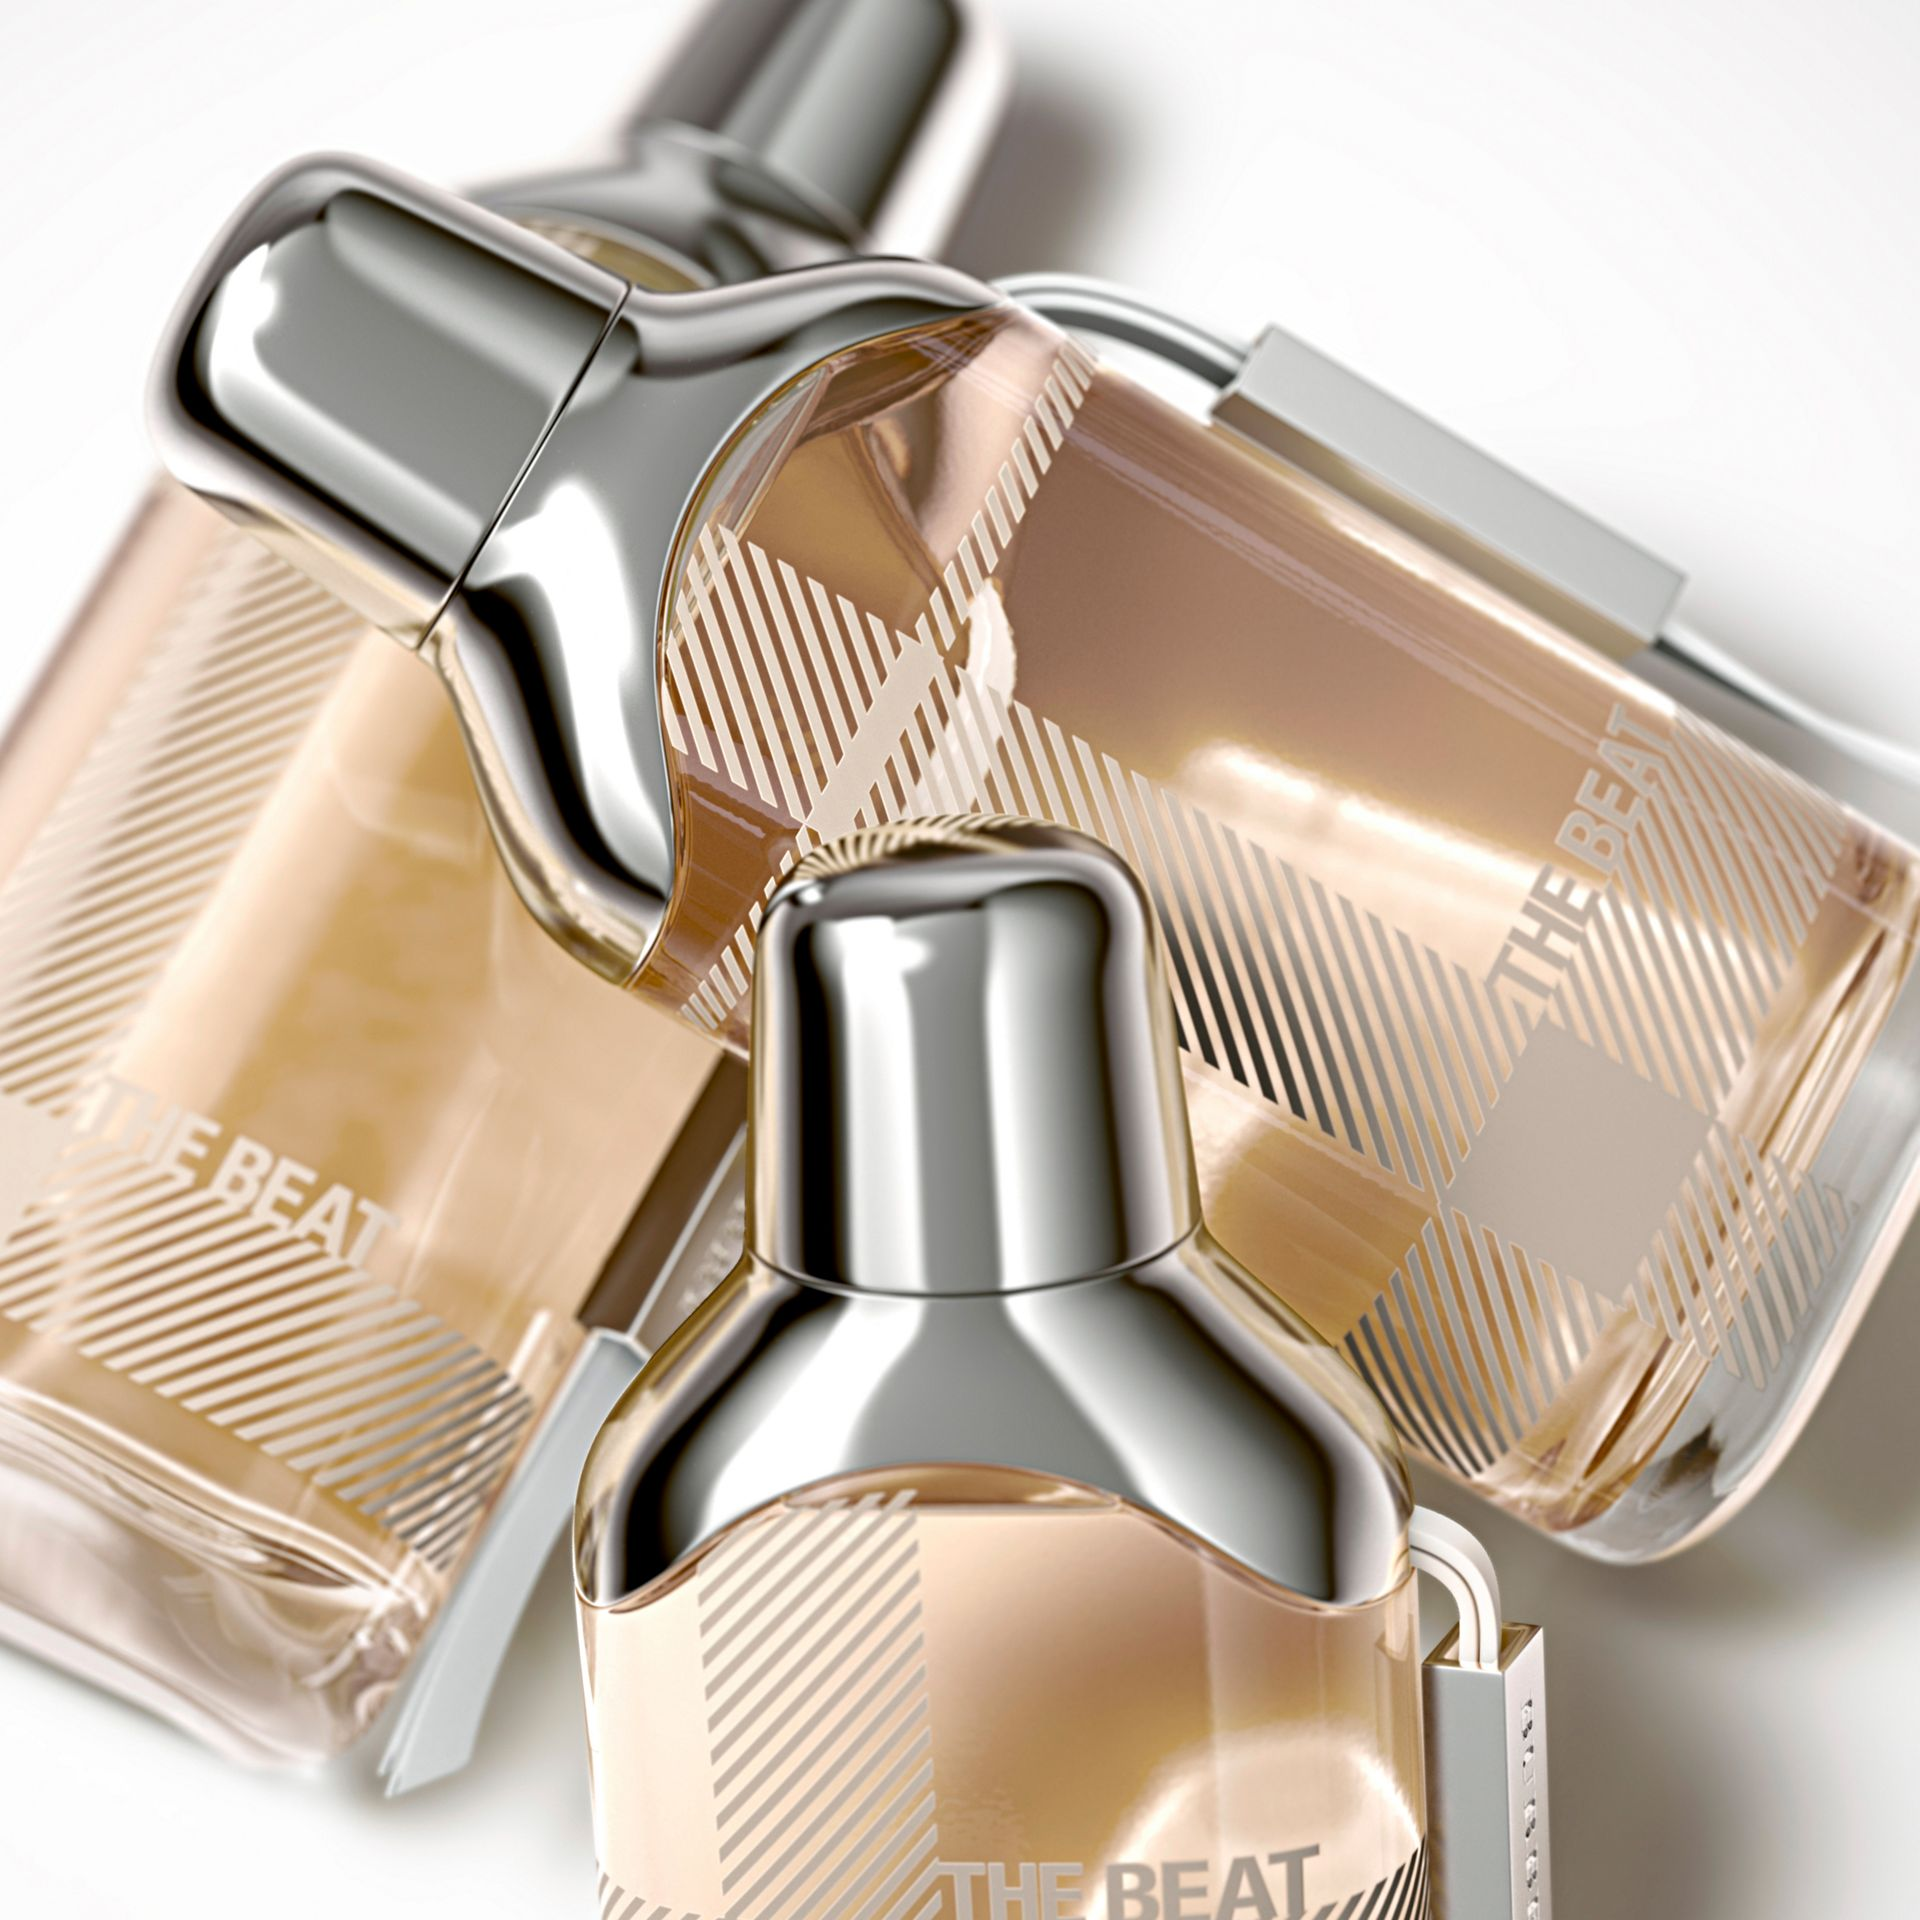 Burberry The Beat Eau de Parfum 50 ml - Galerie-Bild 2